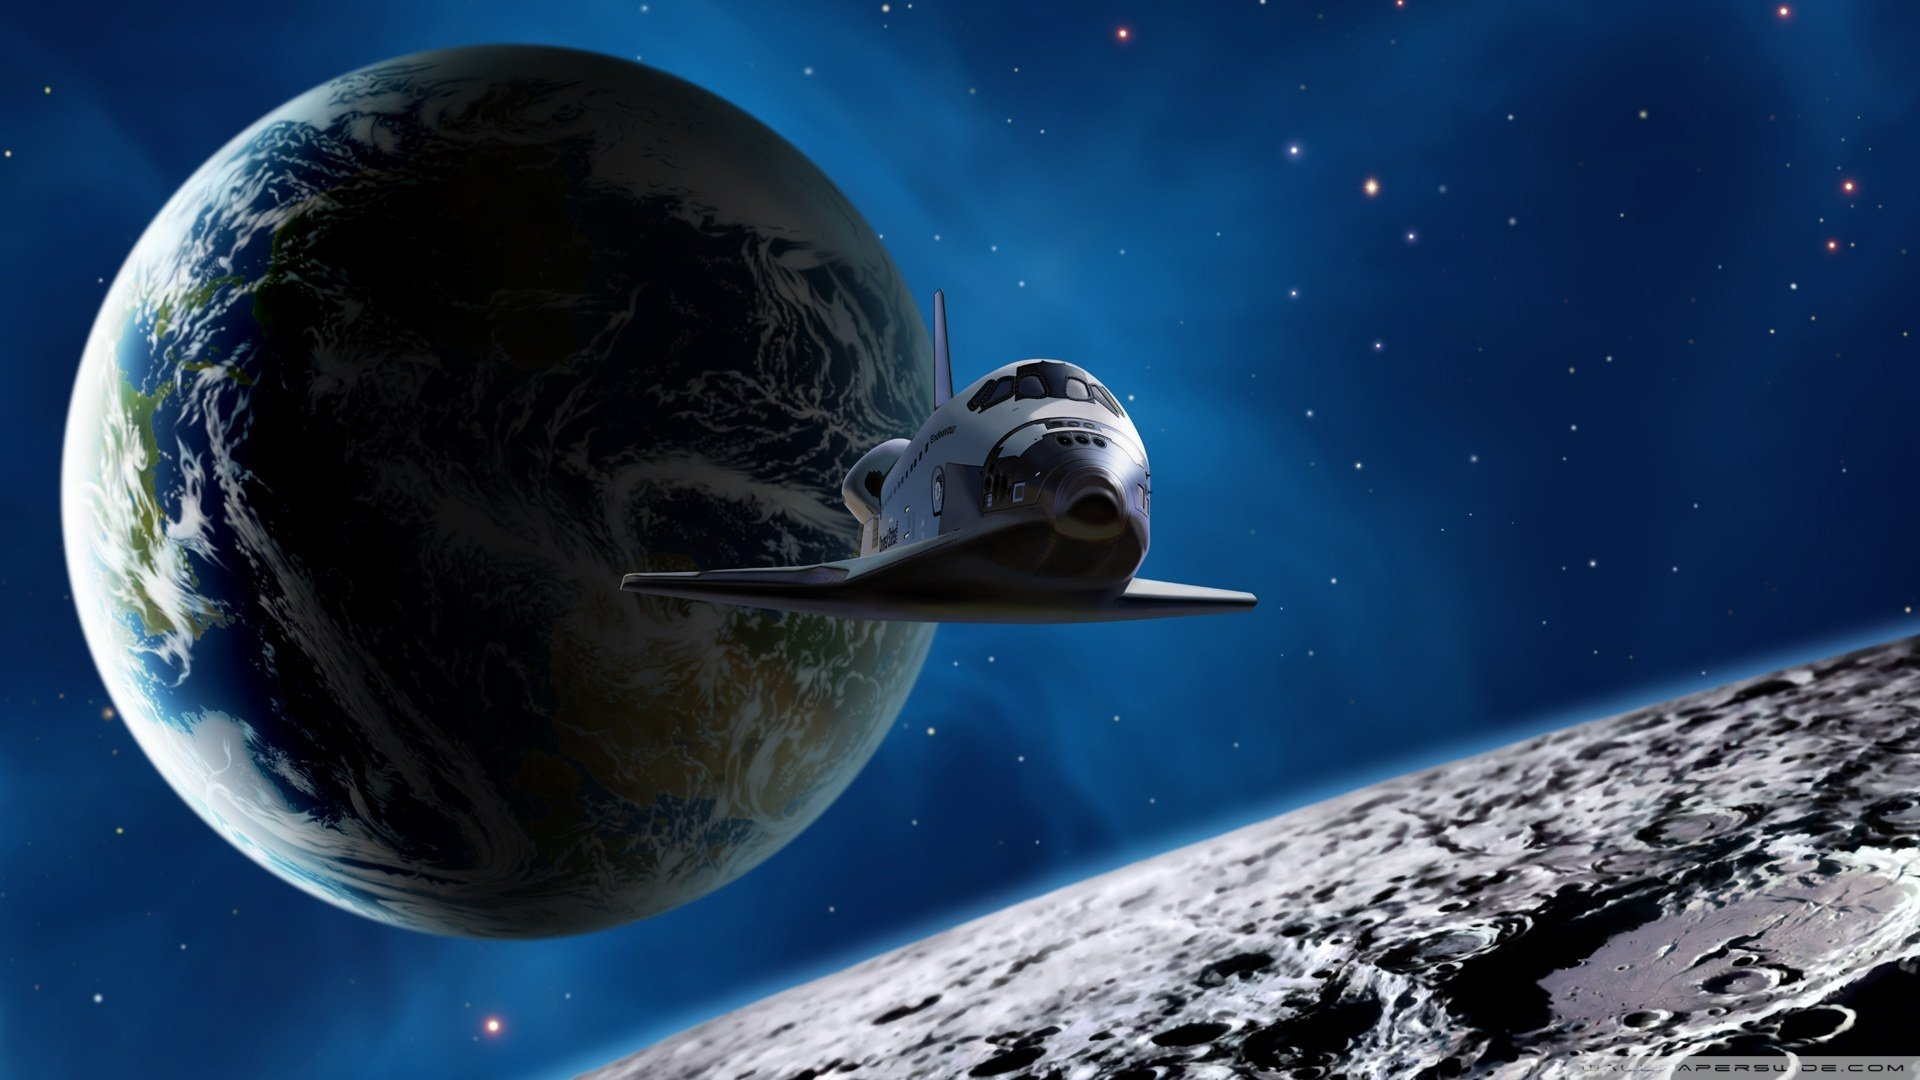 Space Shuttle HD 3D Wallpapers (page 3) - Pics about space